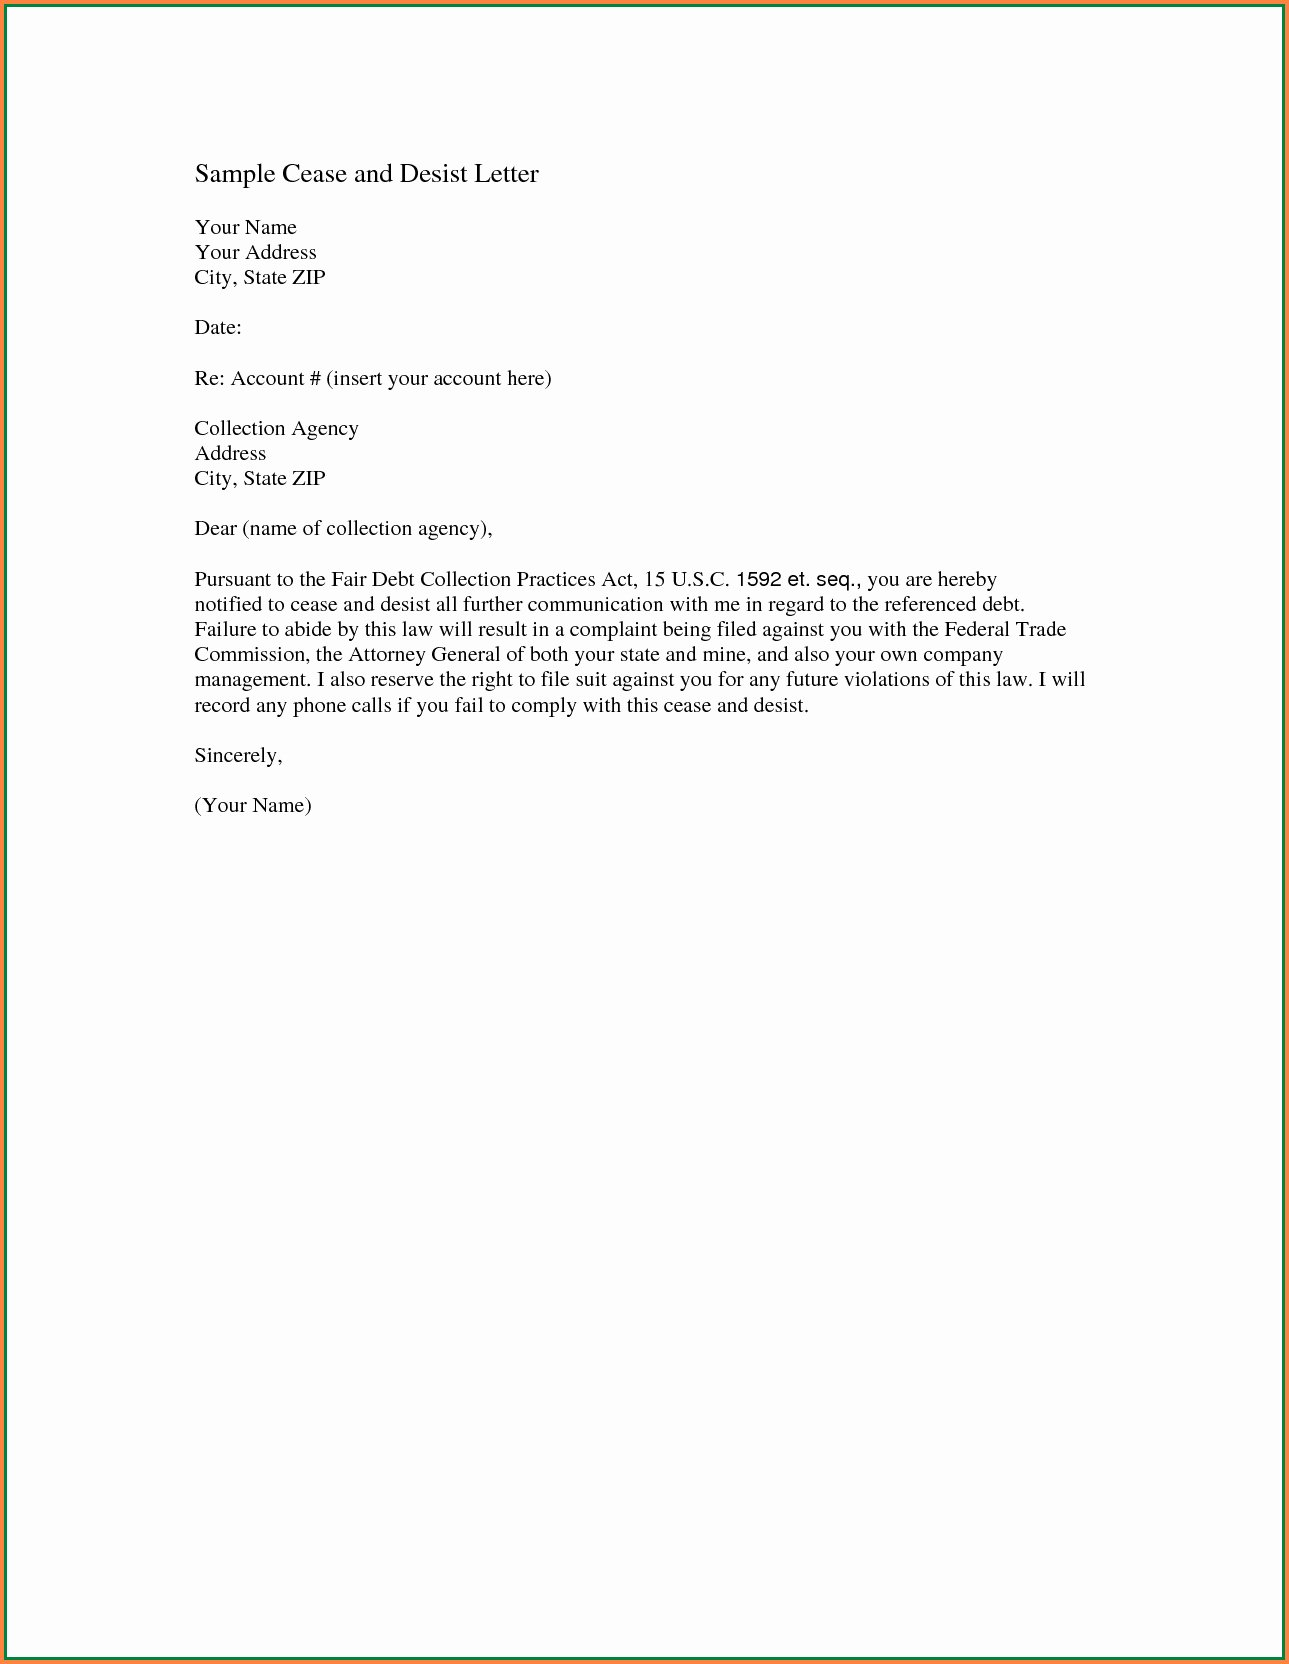 Collection Letter Template Free Best Of Cease and Desist Letter Template Amazon Collection